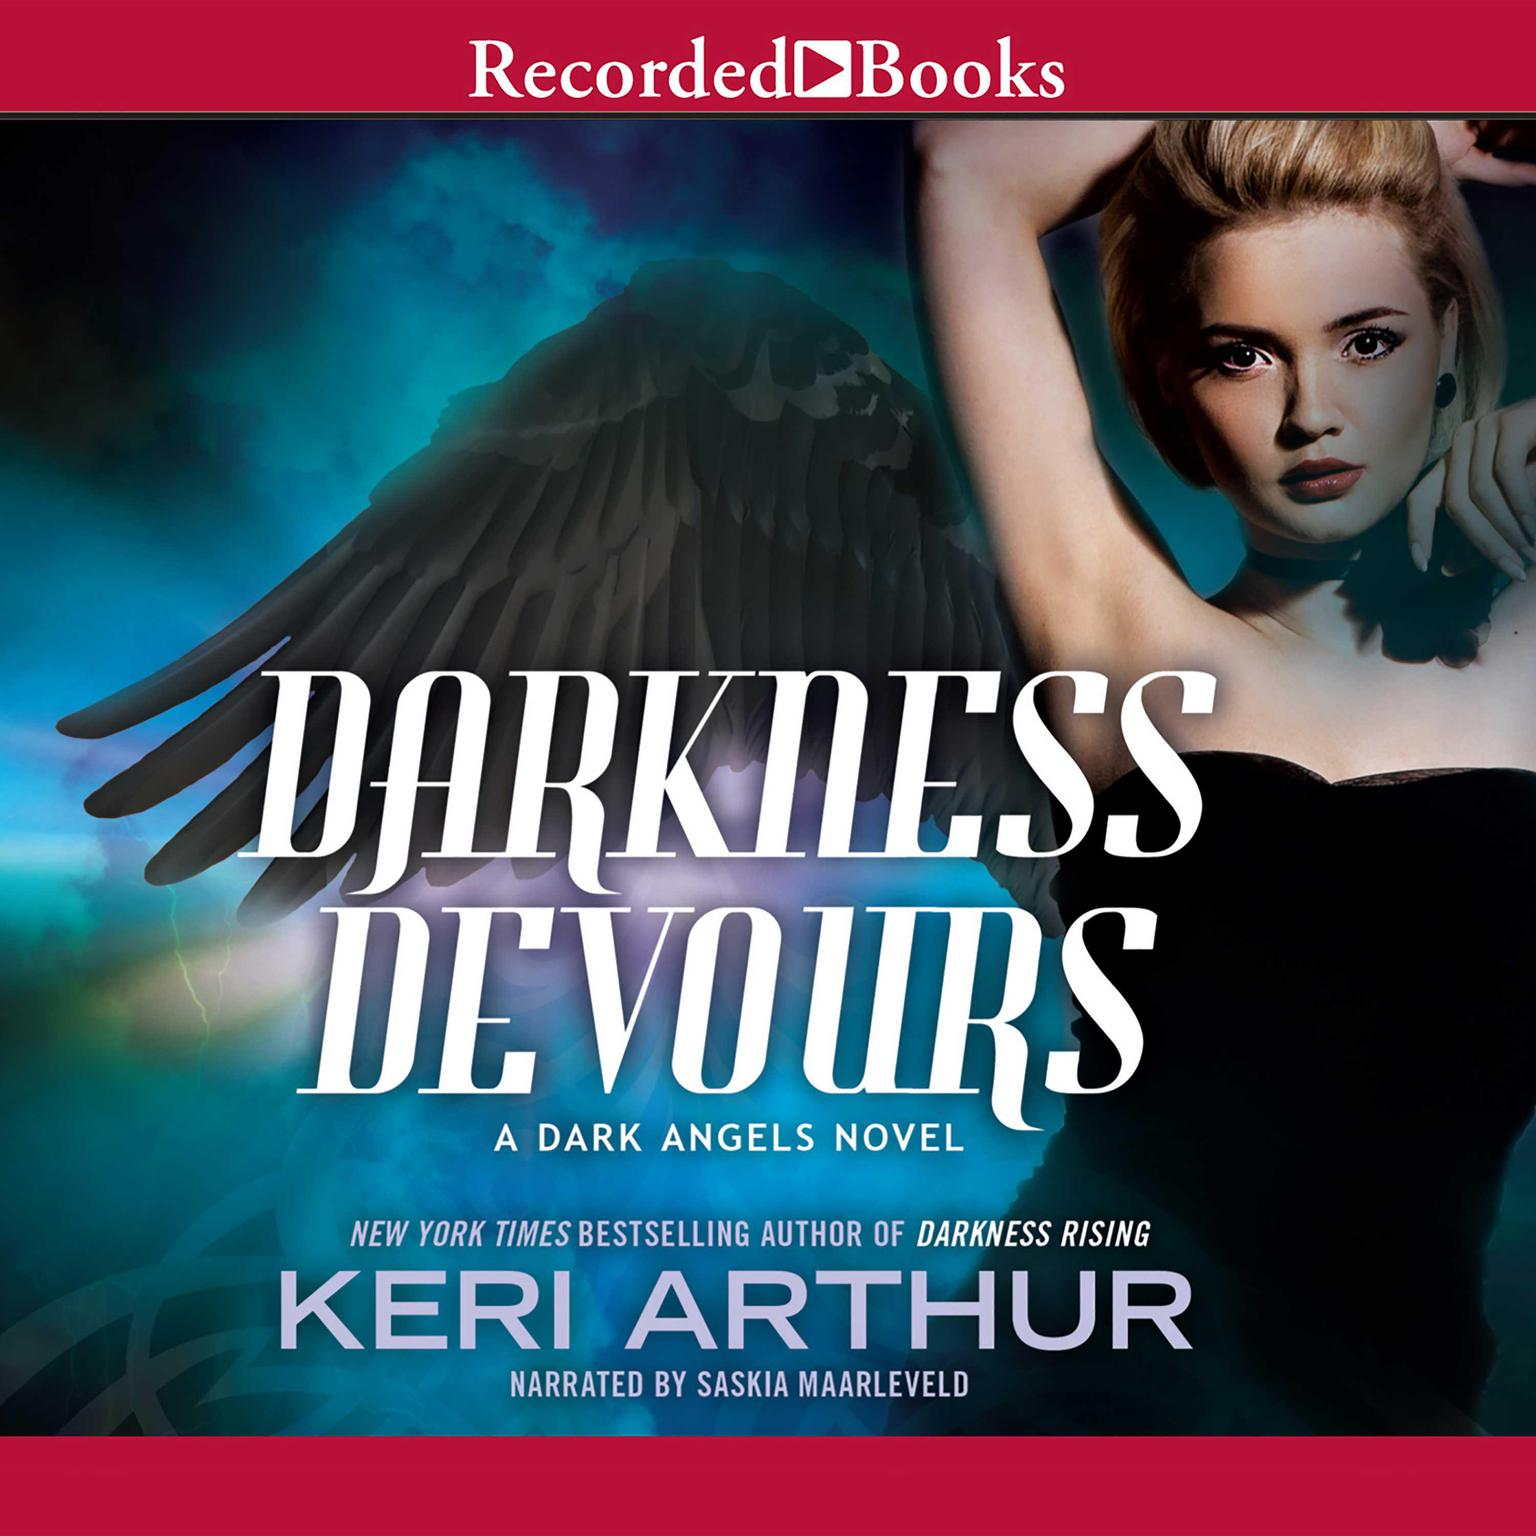 Printable Darkness Devours Audiobook Cover Art